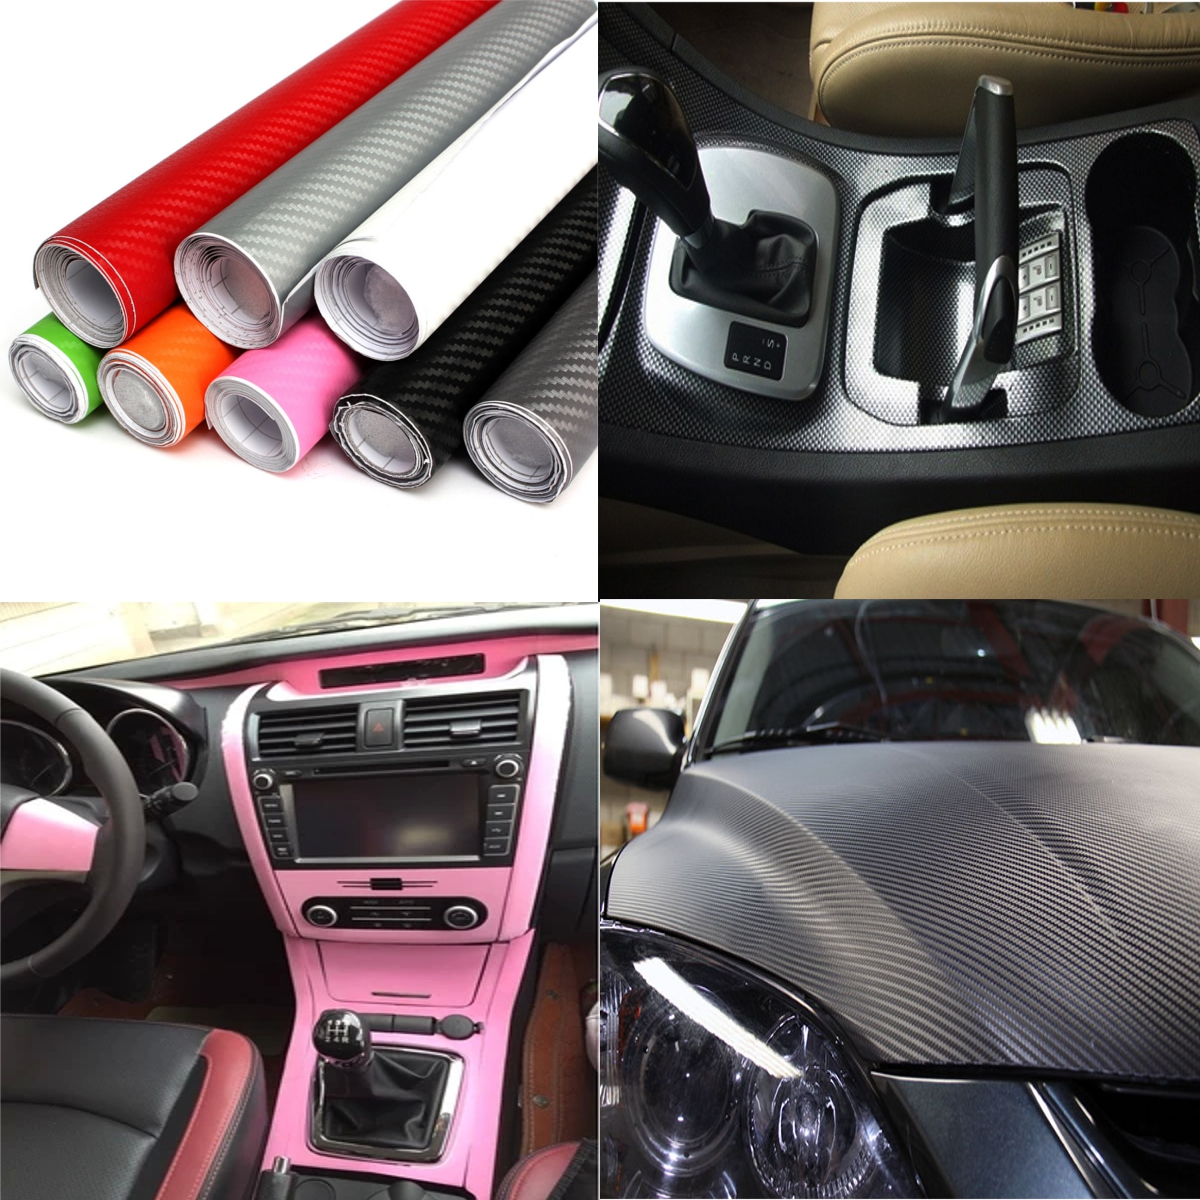 2mx50cm diy 3d autofolie auto carbon fiber vinyl film sticker aufkleber 8 farben ebay. Black Bedroom Furniture Sets. Home Design Ideas